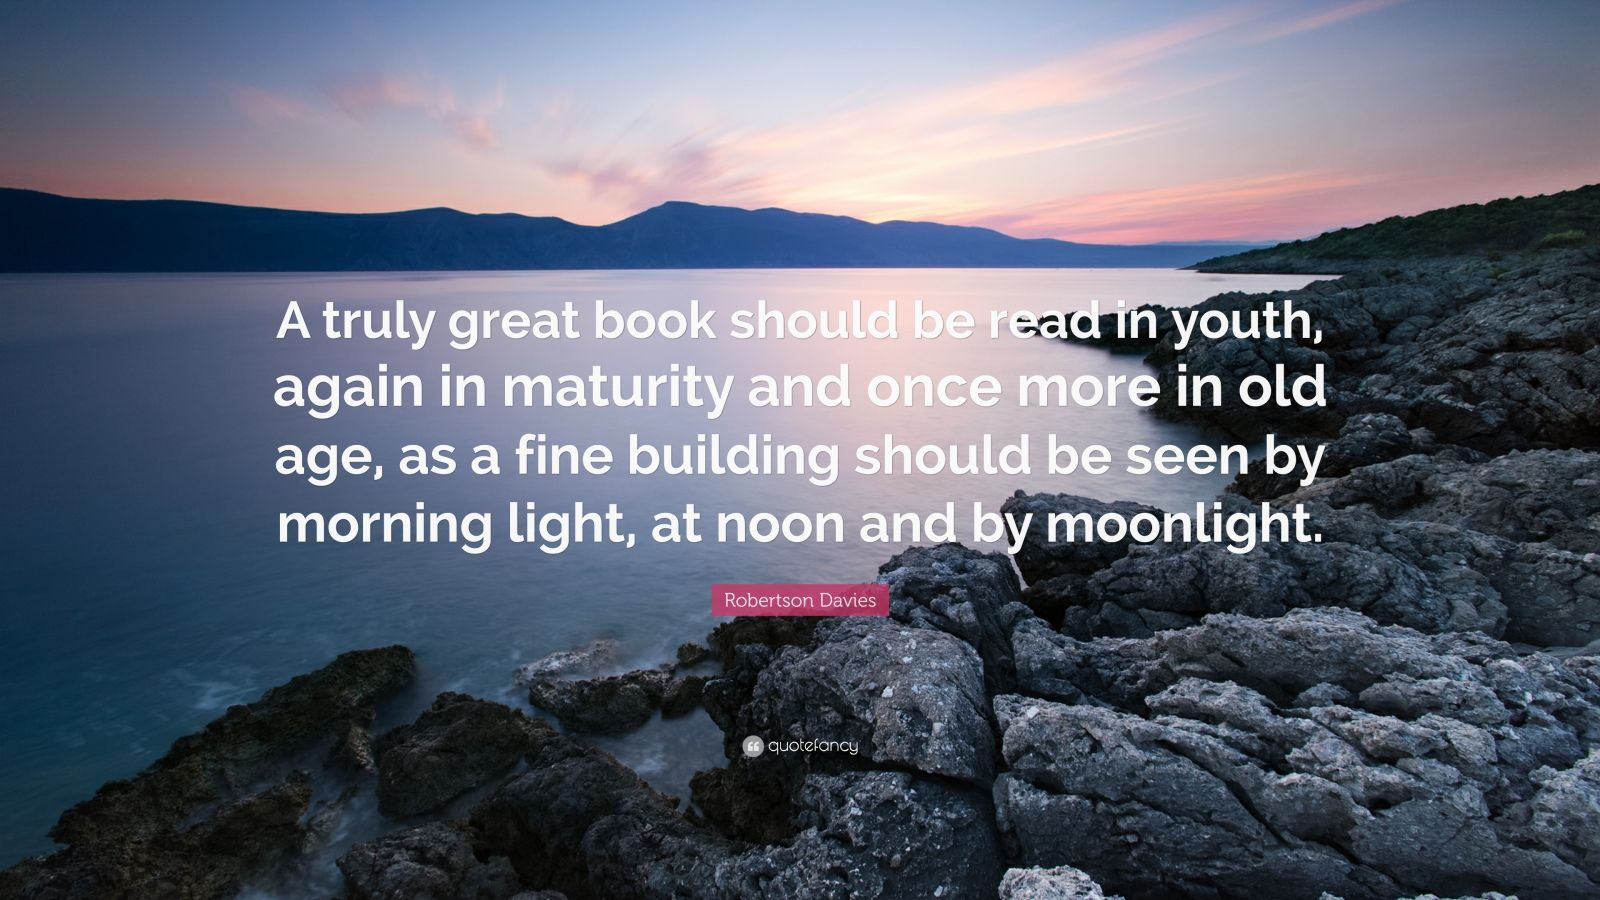 "Robertson Davies Quote: ""A truly great book should be read in youth, again in maturity and once more in old age, as a fine building should be seen by morning light, at noon and by moonlight."""